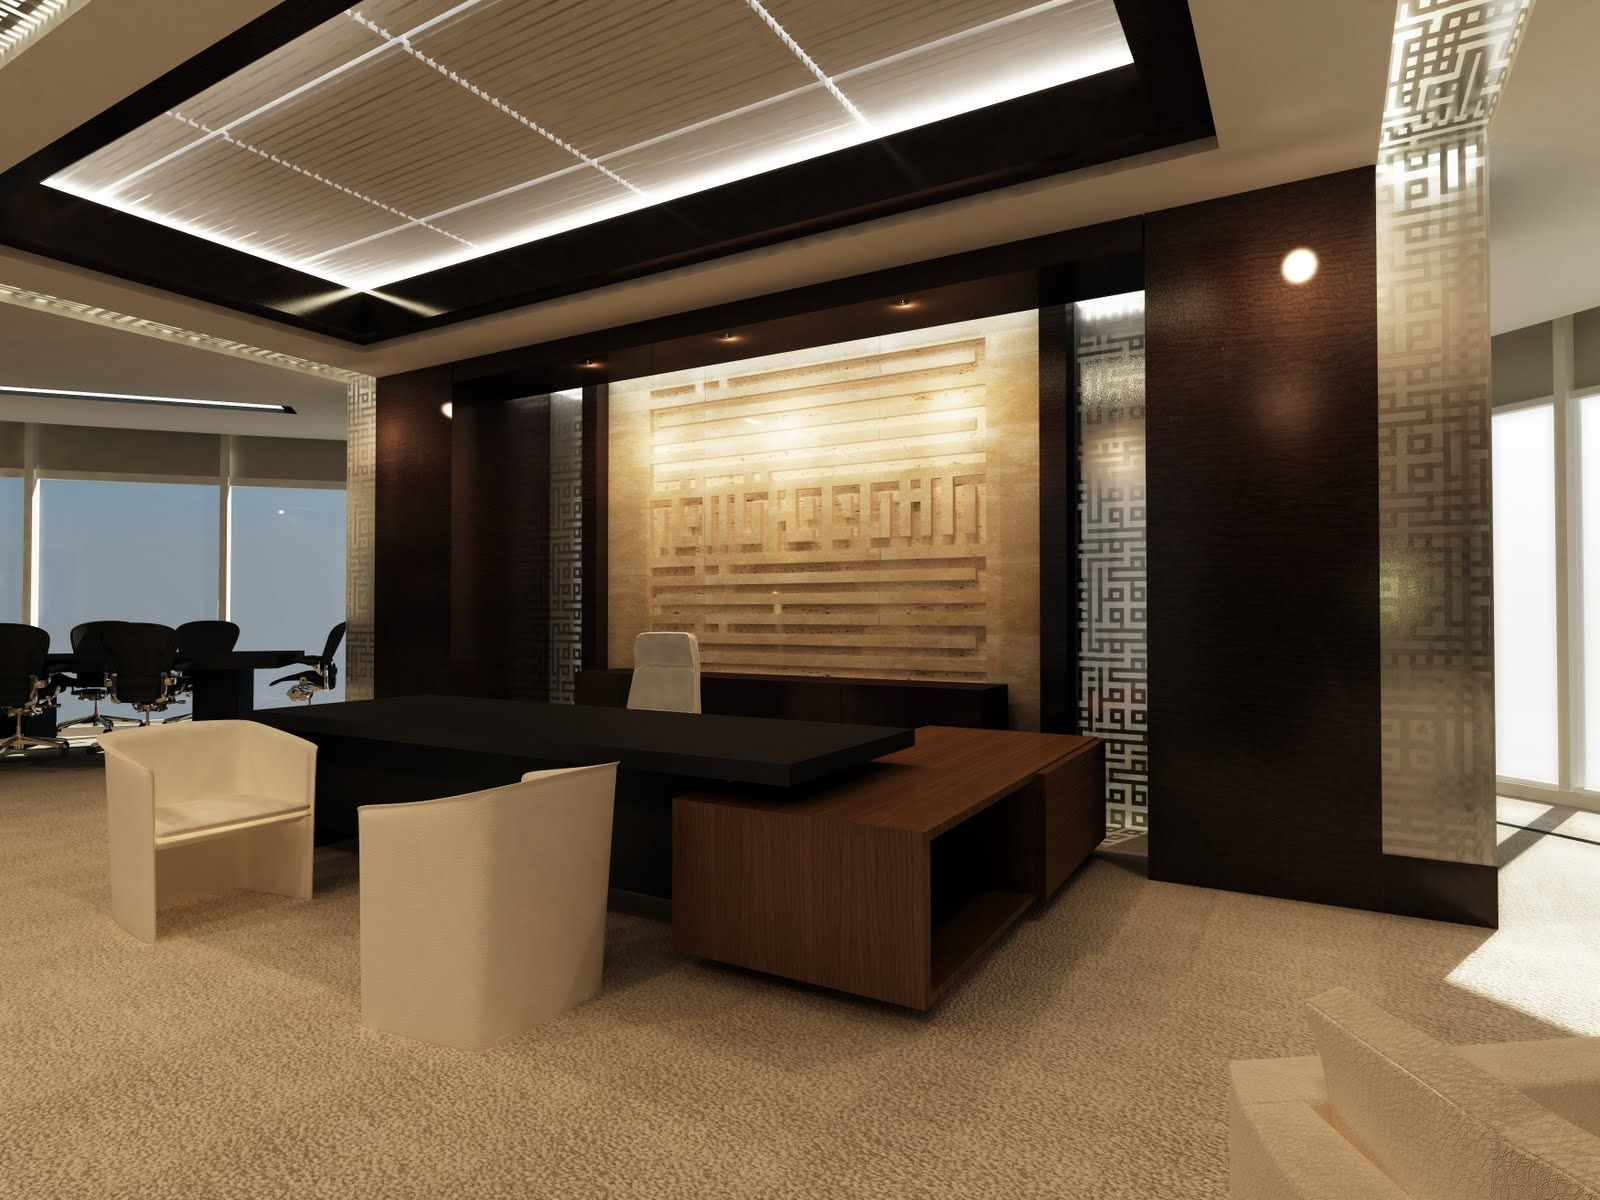 Office interior design intended for office interior design for Office desk layout ideas